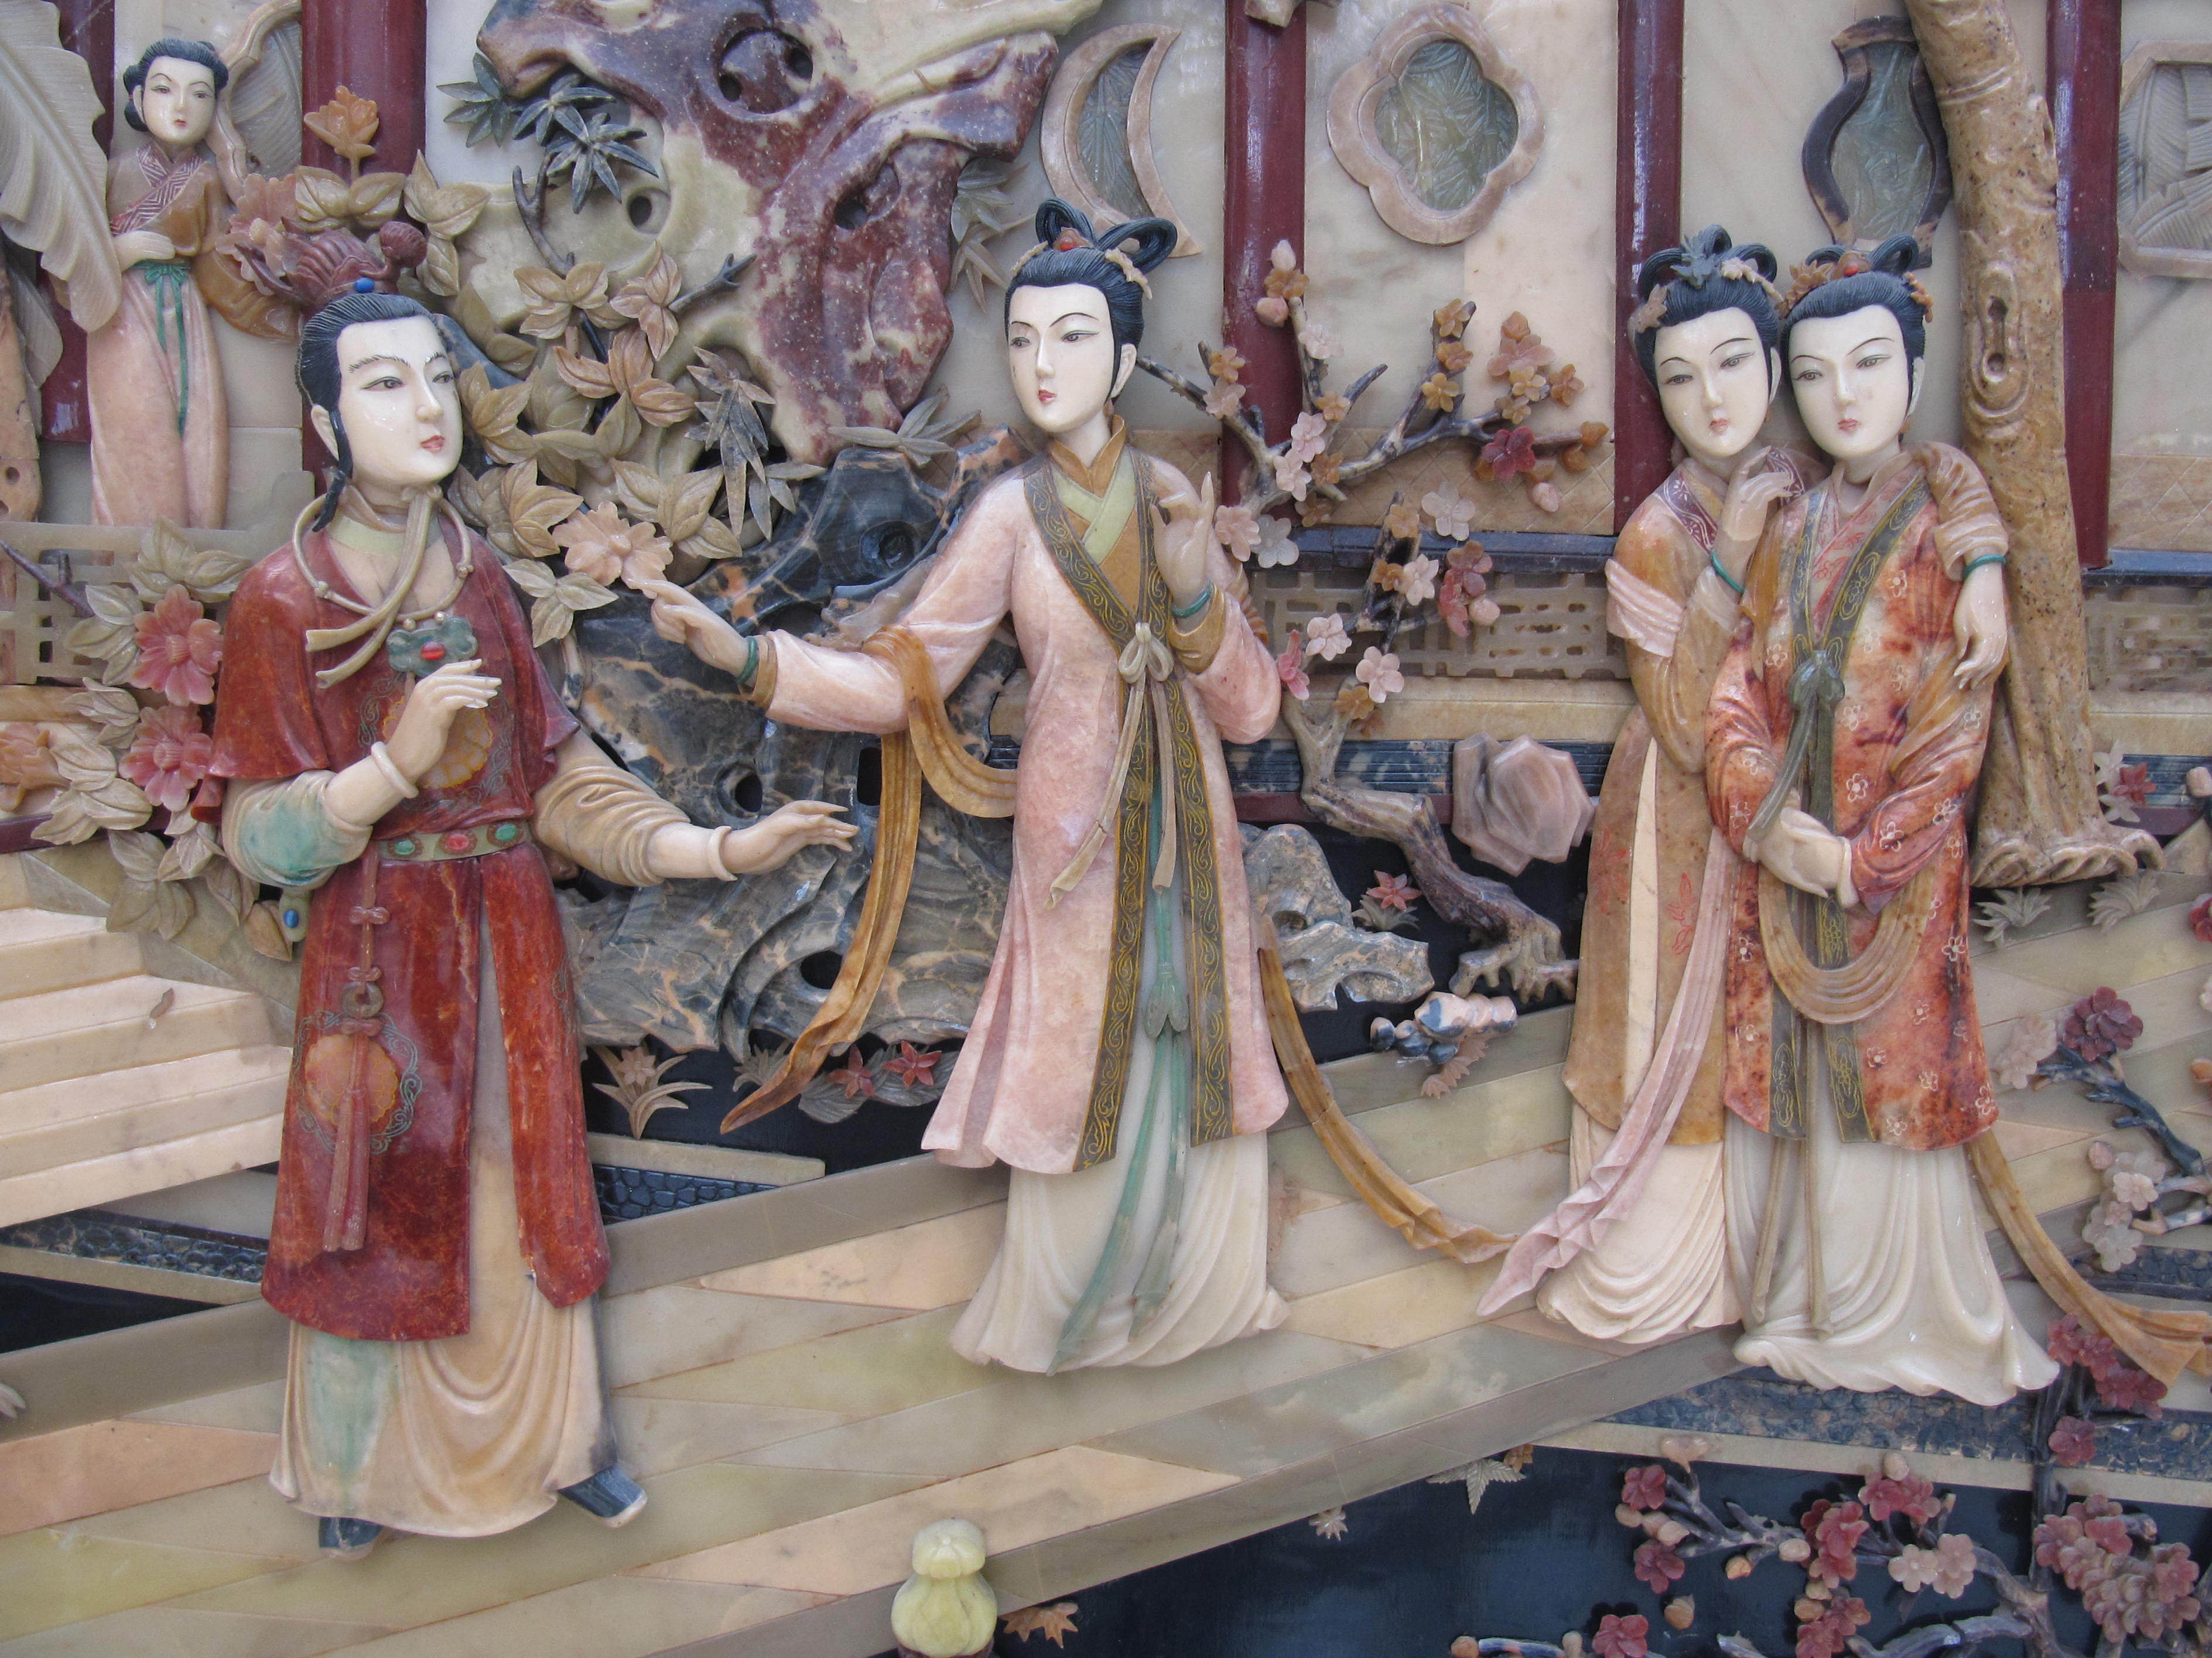 Characters from the classic Chinese novel Dream of the Red Chamber are depicted in a relief panel.